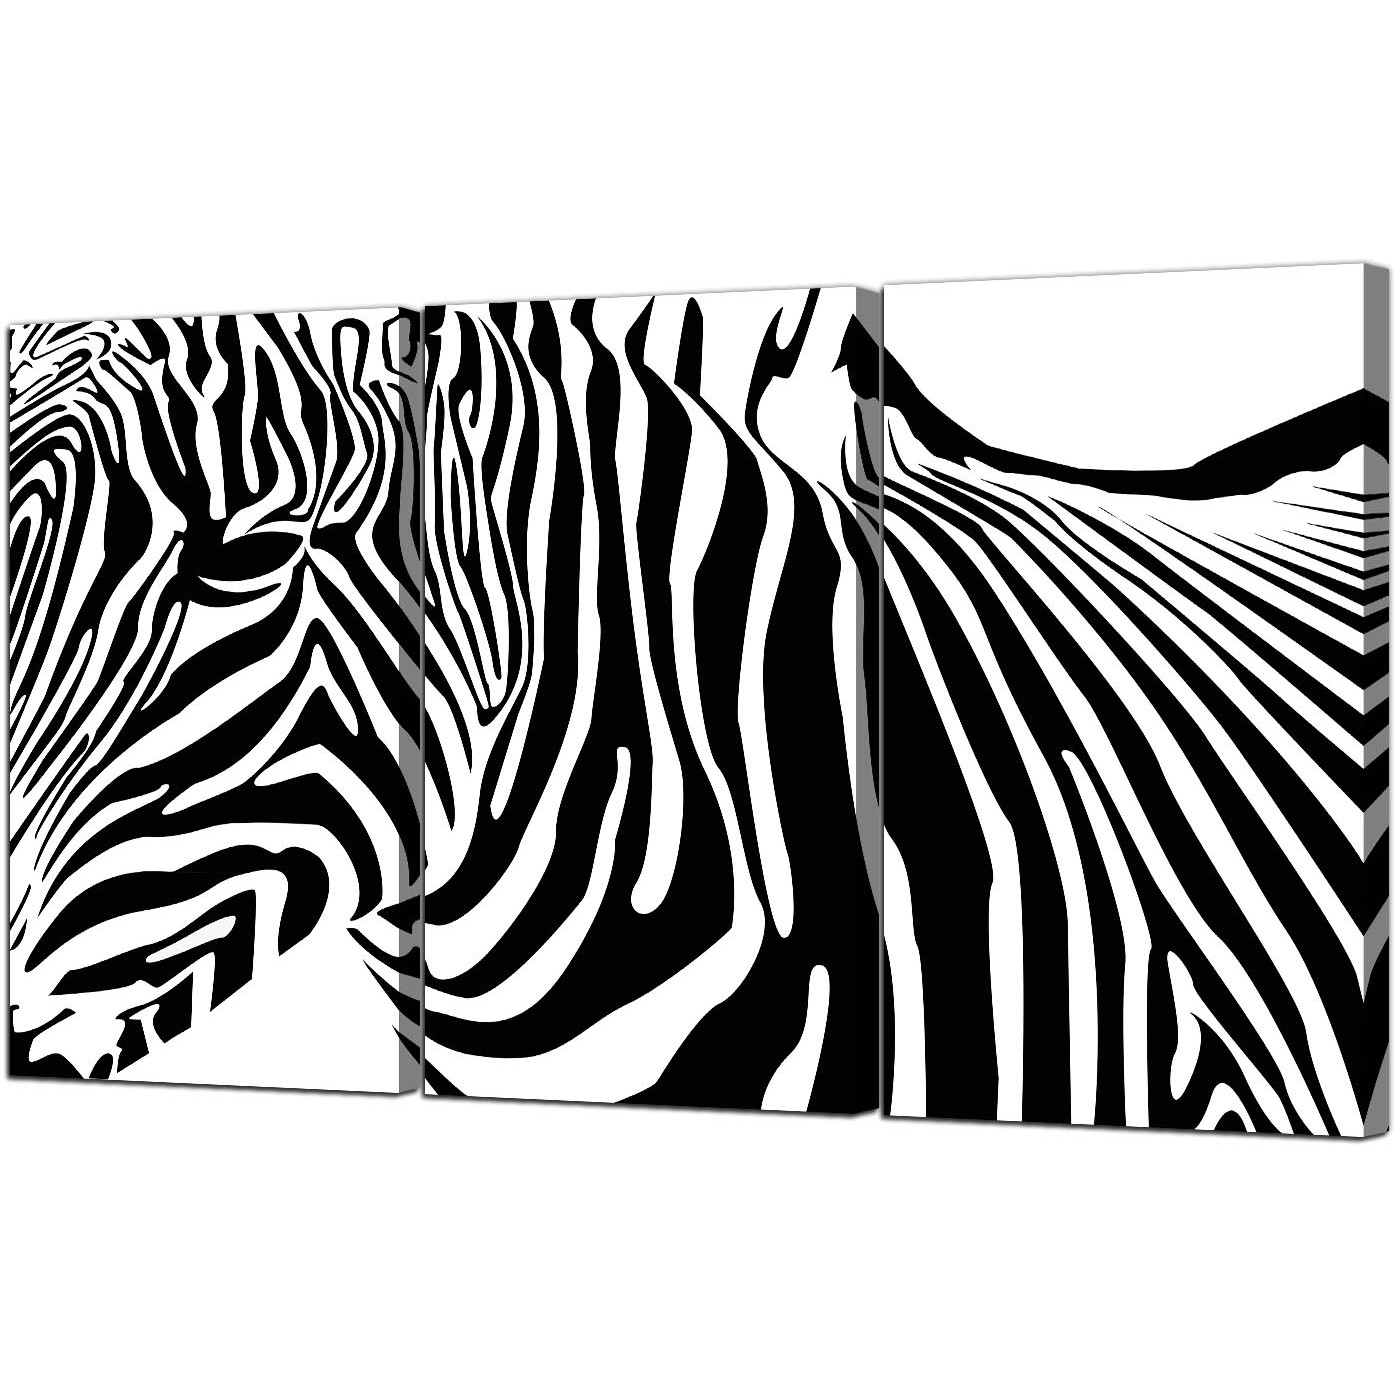 Zebra Canvas Wall Art For Most Up To Date Zebra Canvas Pictures 3 Panel For Your Dining Room (View 13 of 20)